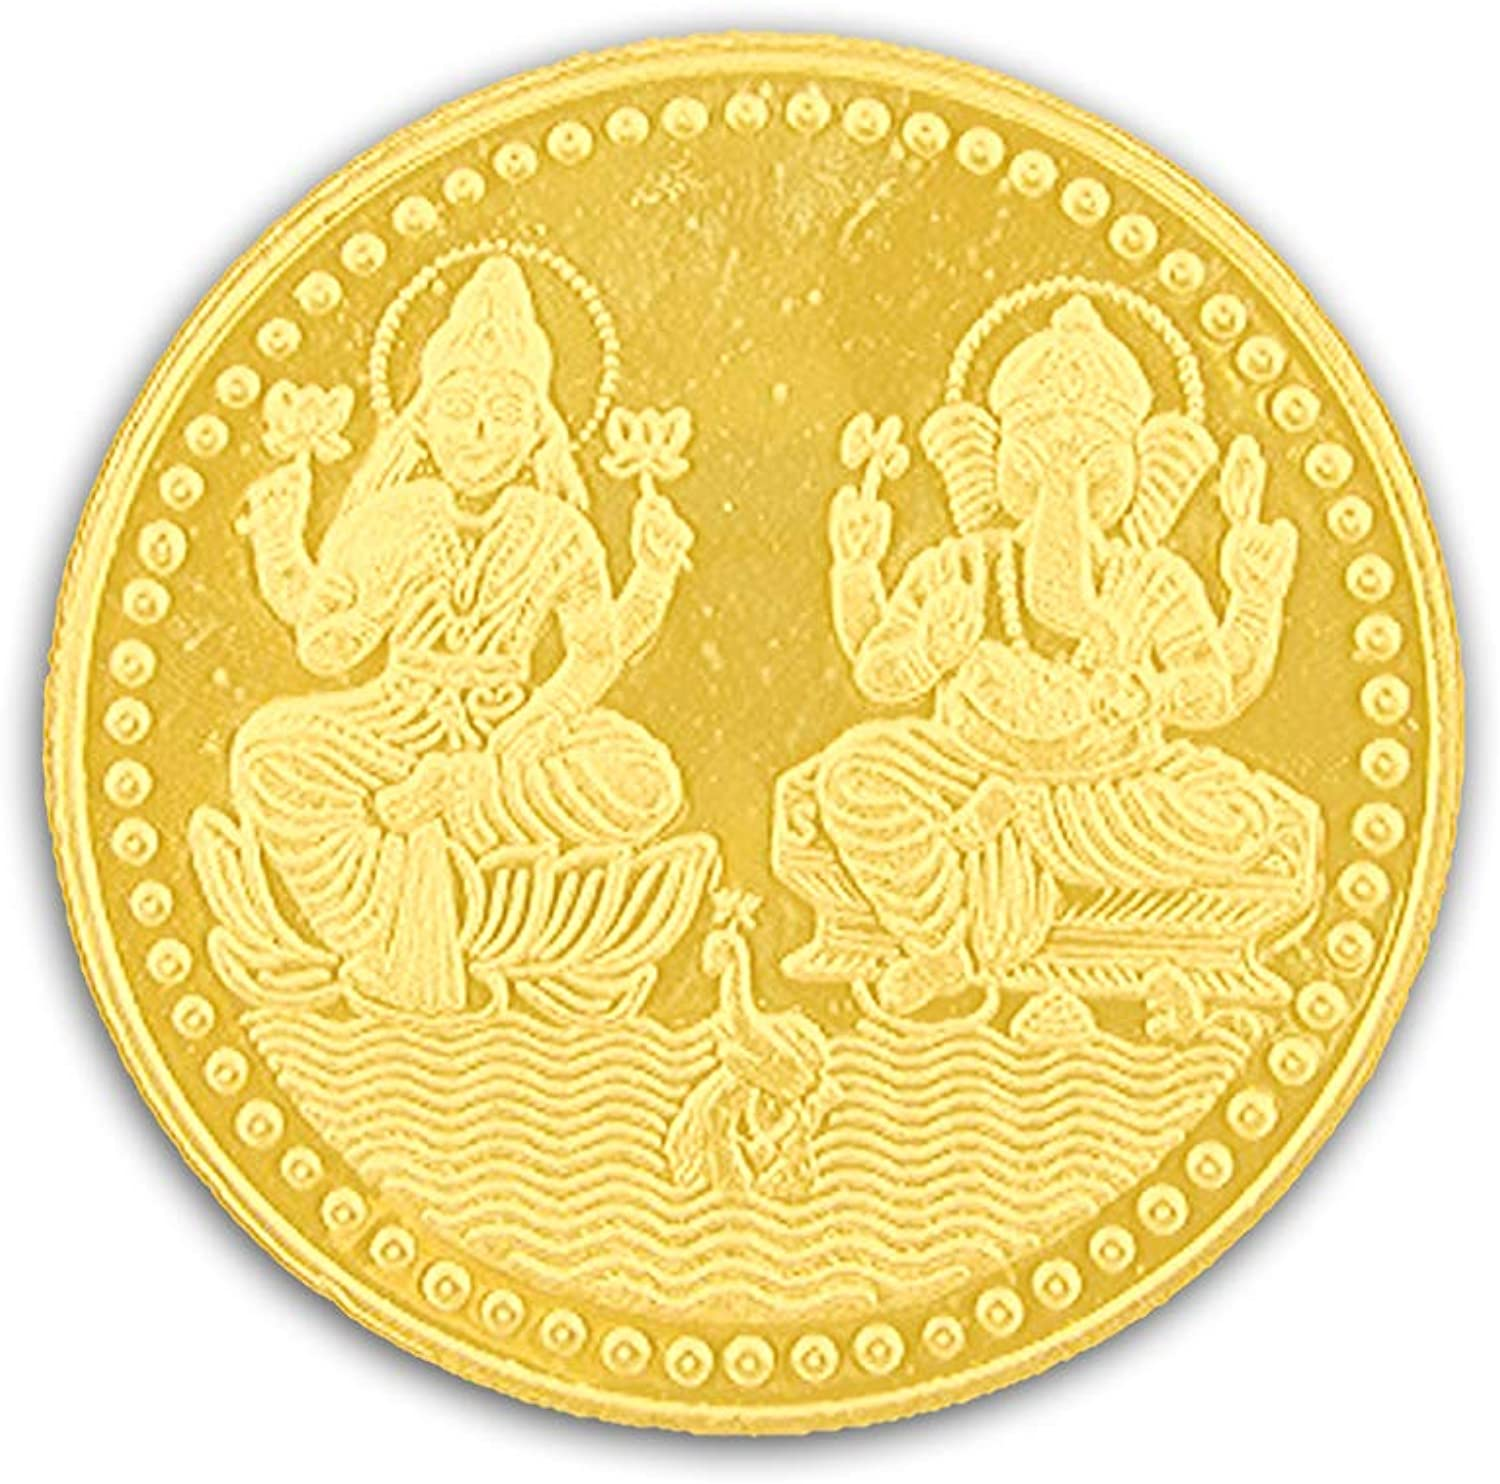 Ganesh Lakshmi Coin In Pure Silver 999 gold Plated Religious Coin 150 Grams